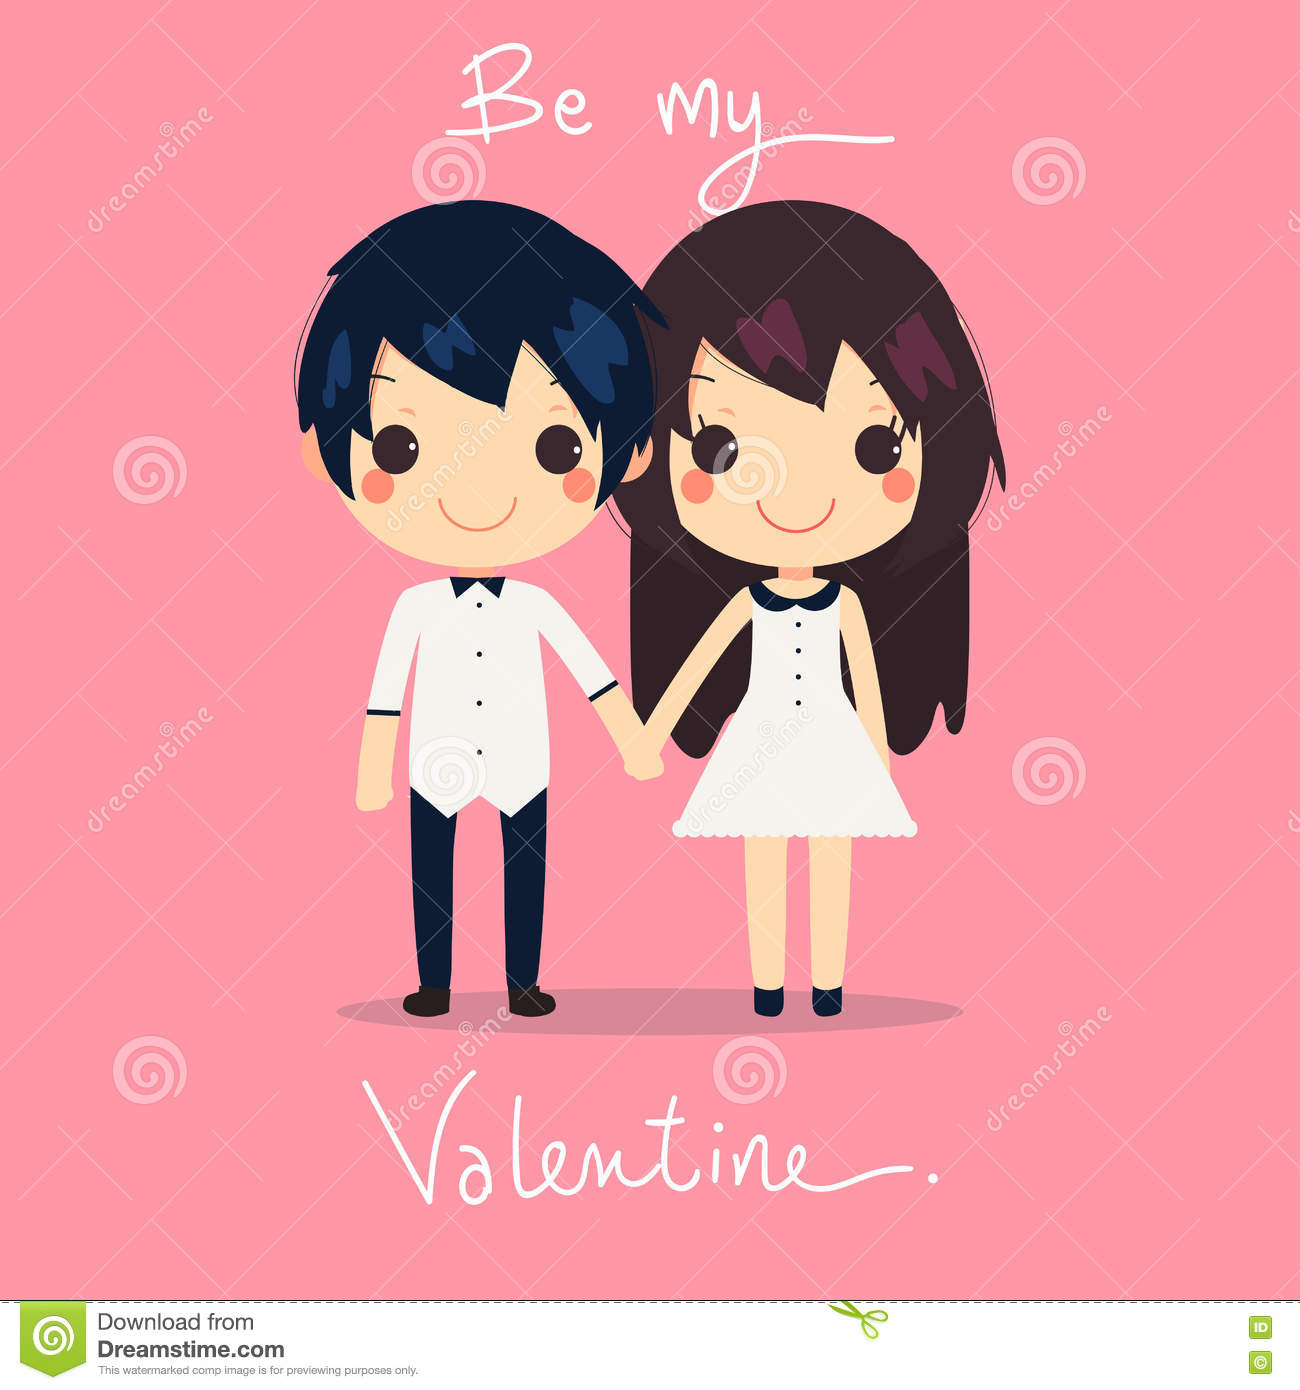 Card of cute couple hold hands together they wear couples dress and shirt with text be my valentine